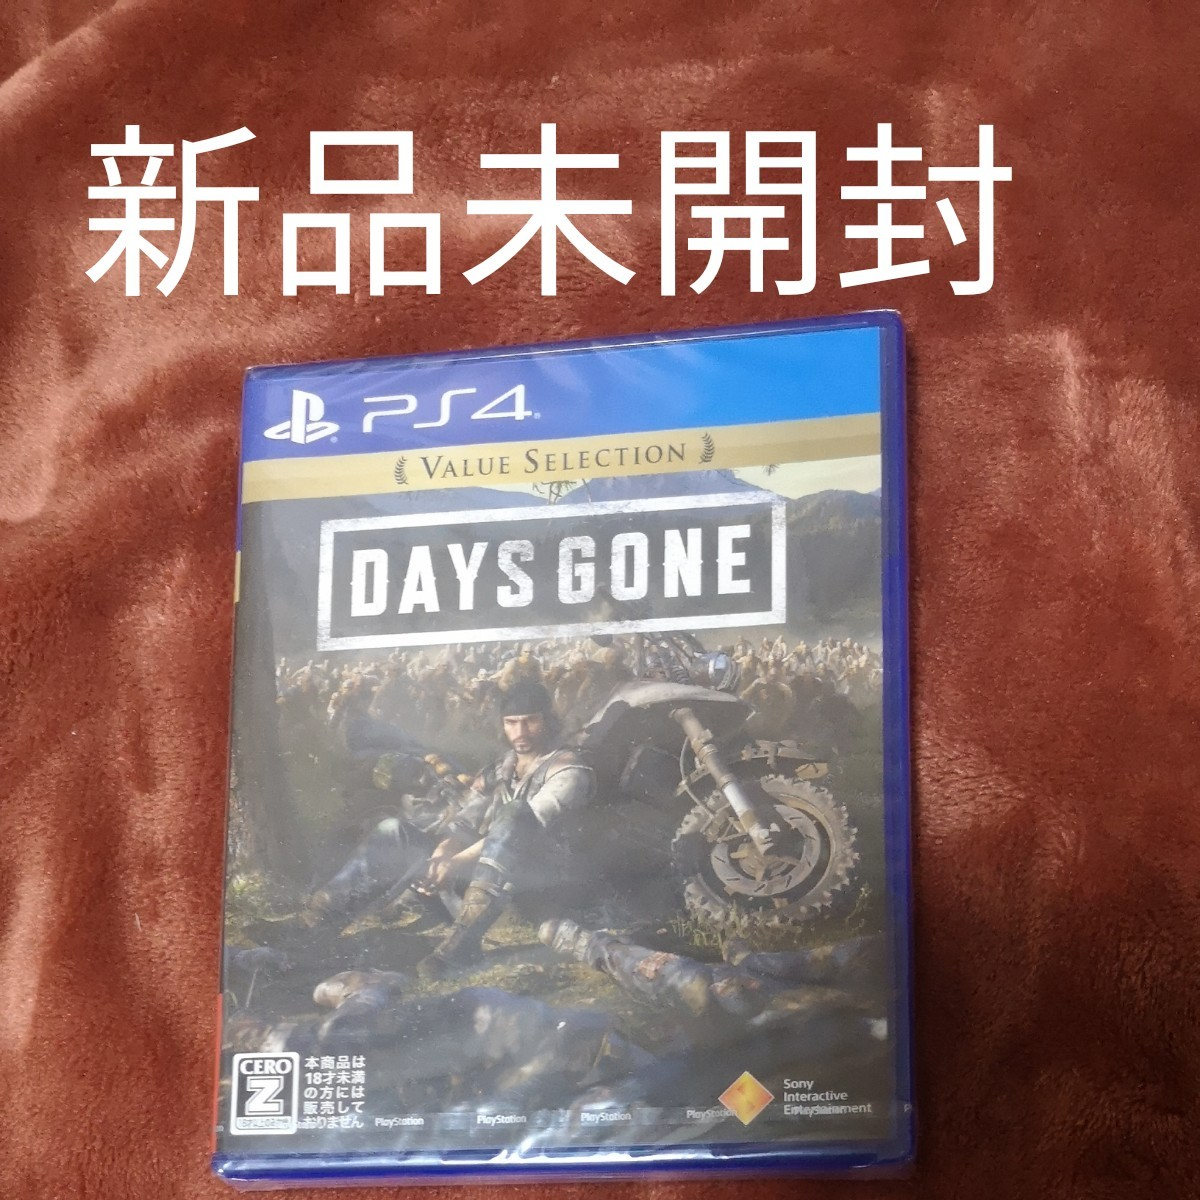 【PS4】 新品未開封 Days Gone [Value Selection] PS4ソフト